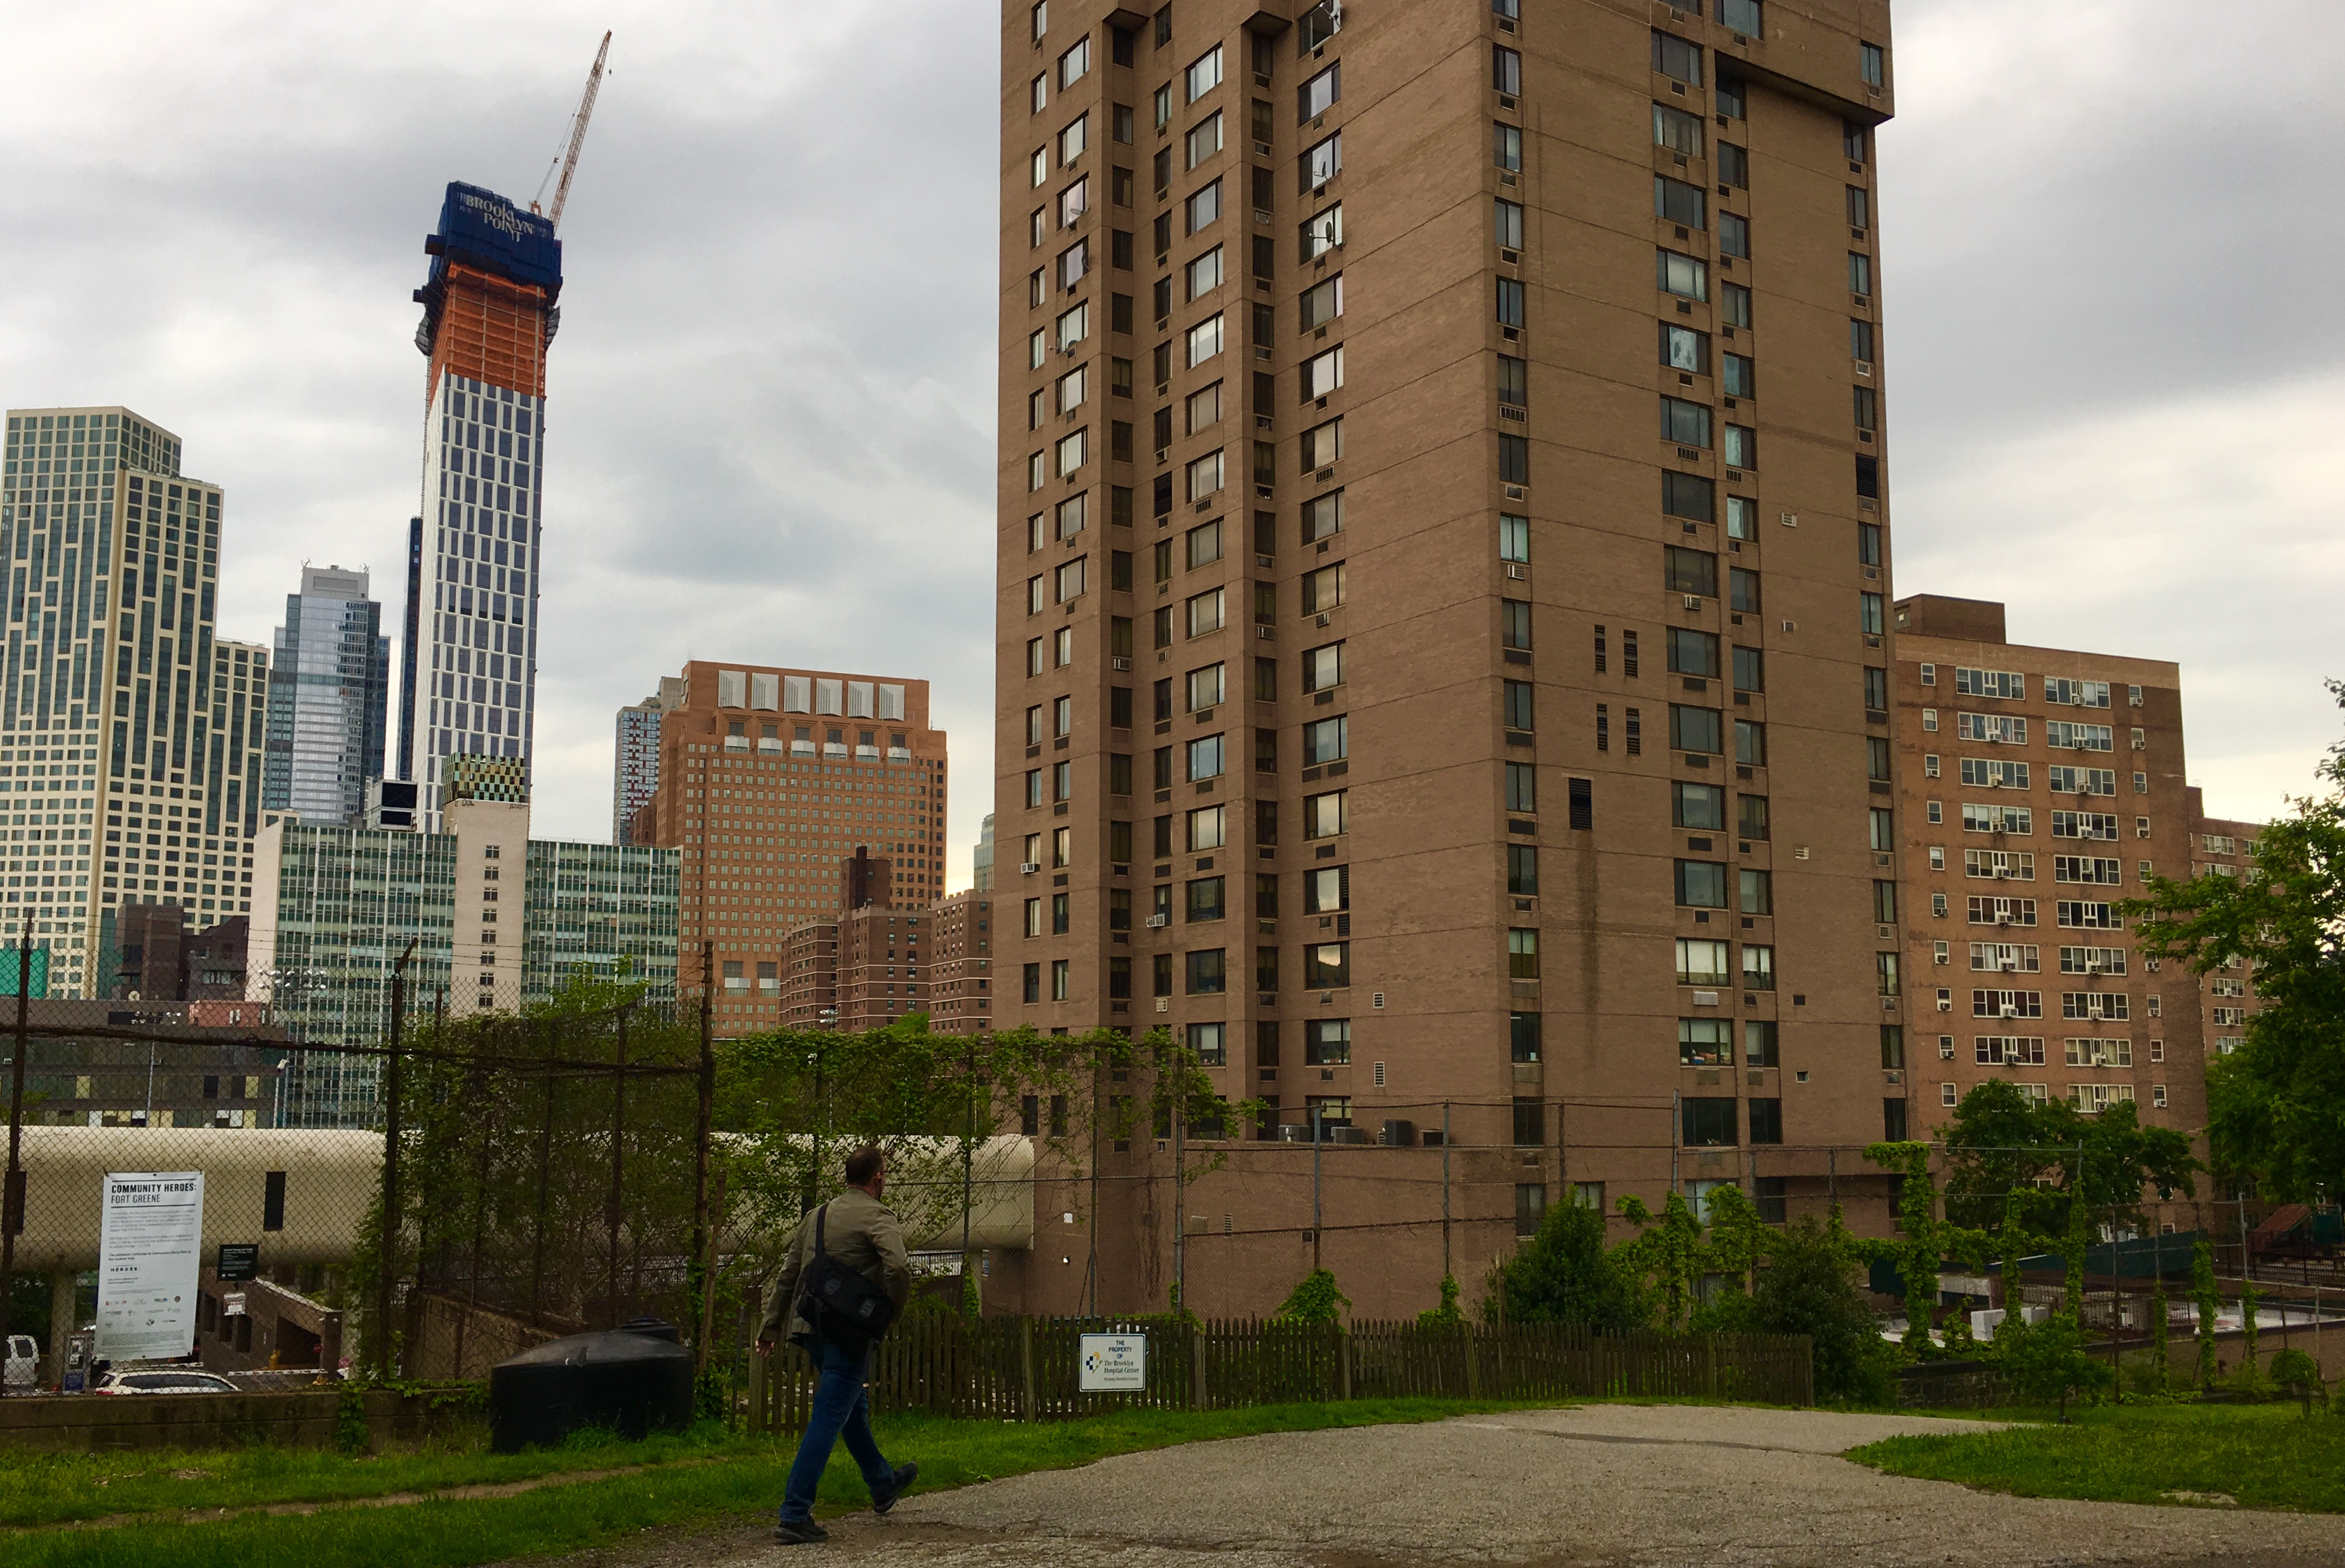 The tower at right is the Maynard Building. Downtown Brooklyn skyscrapers are visible in the distance. Eagle photo by Lore Croghan